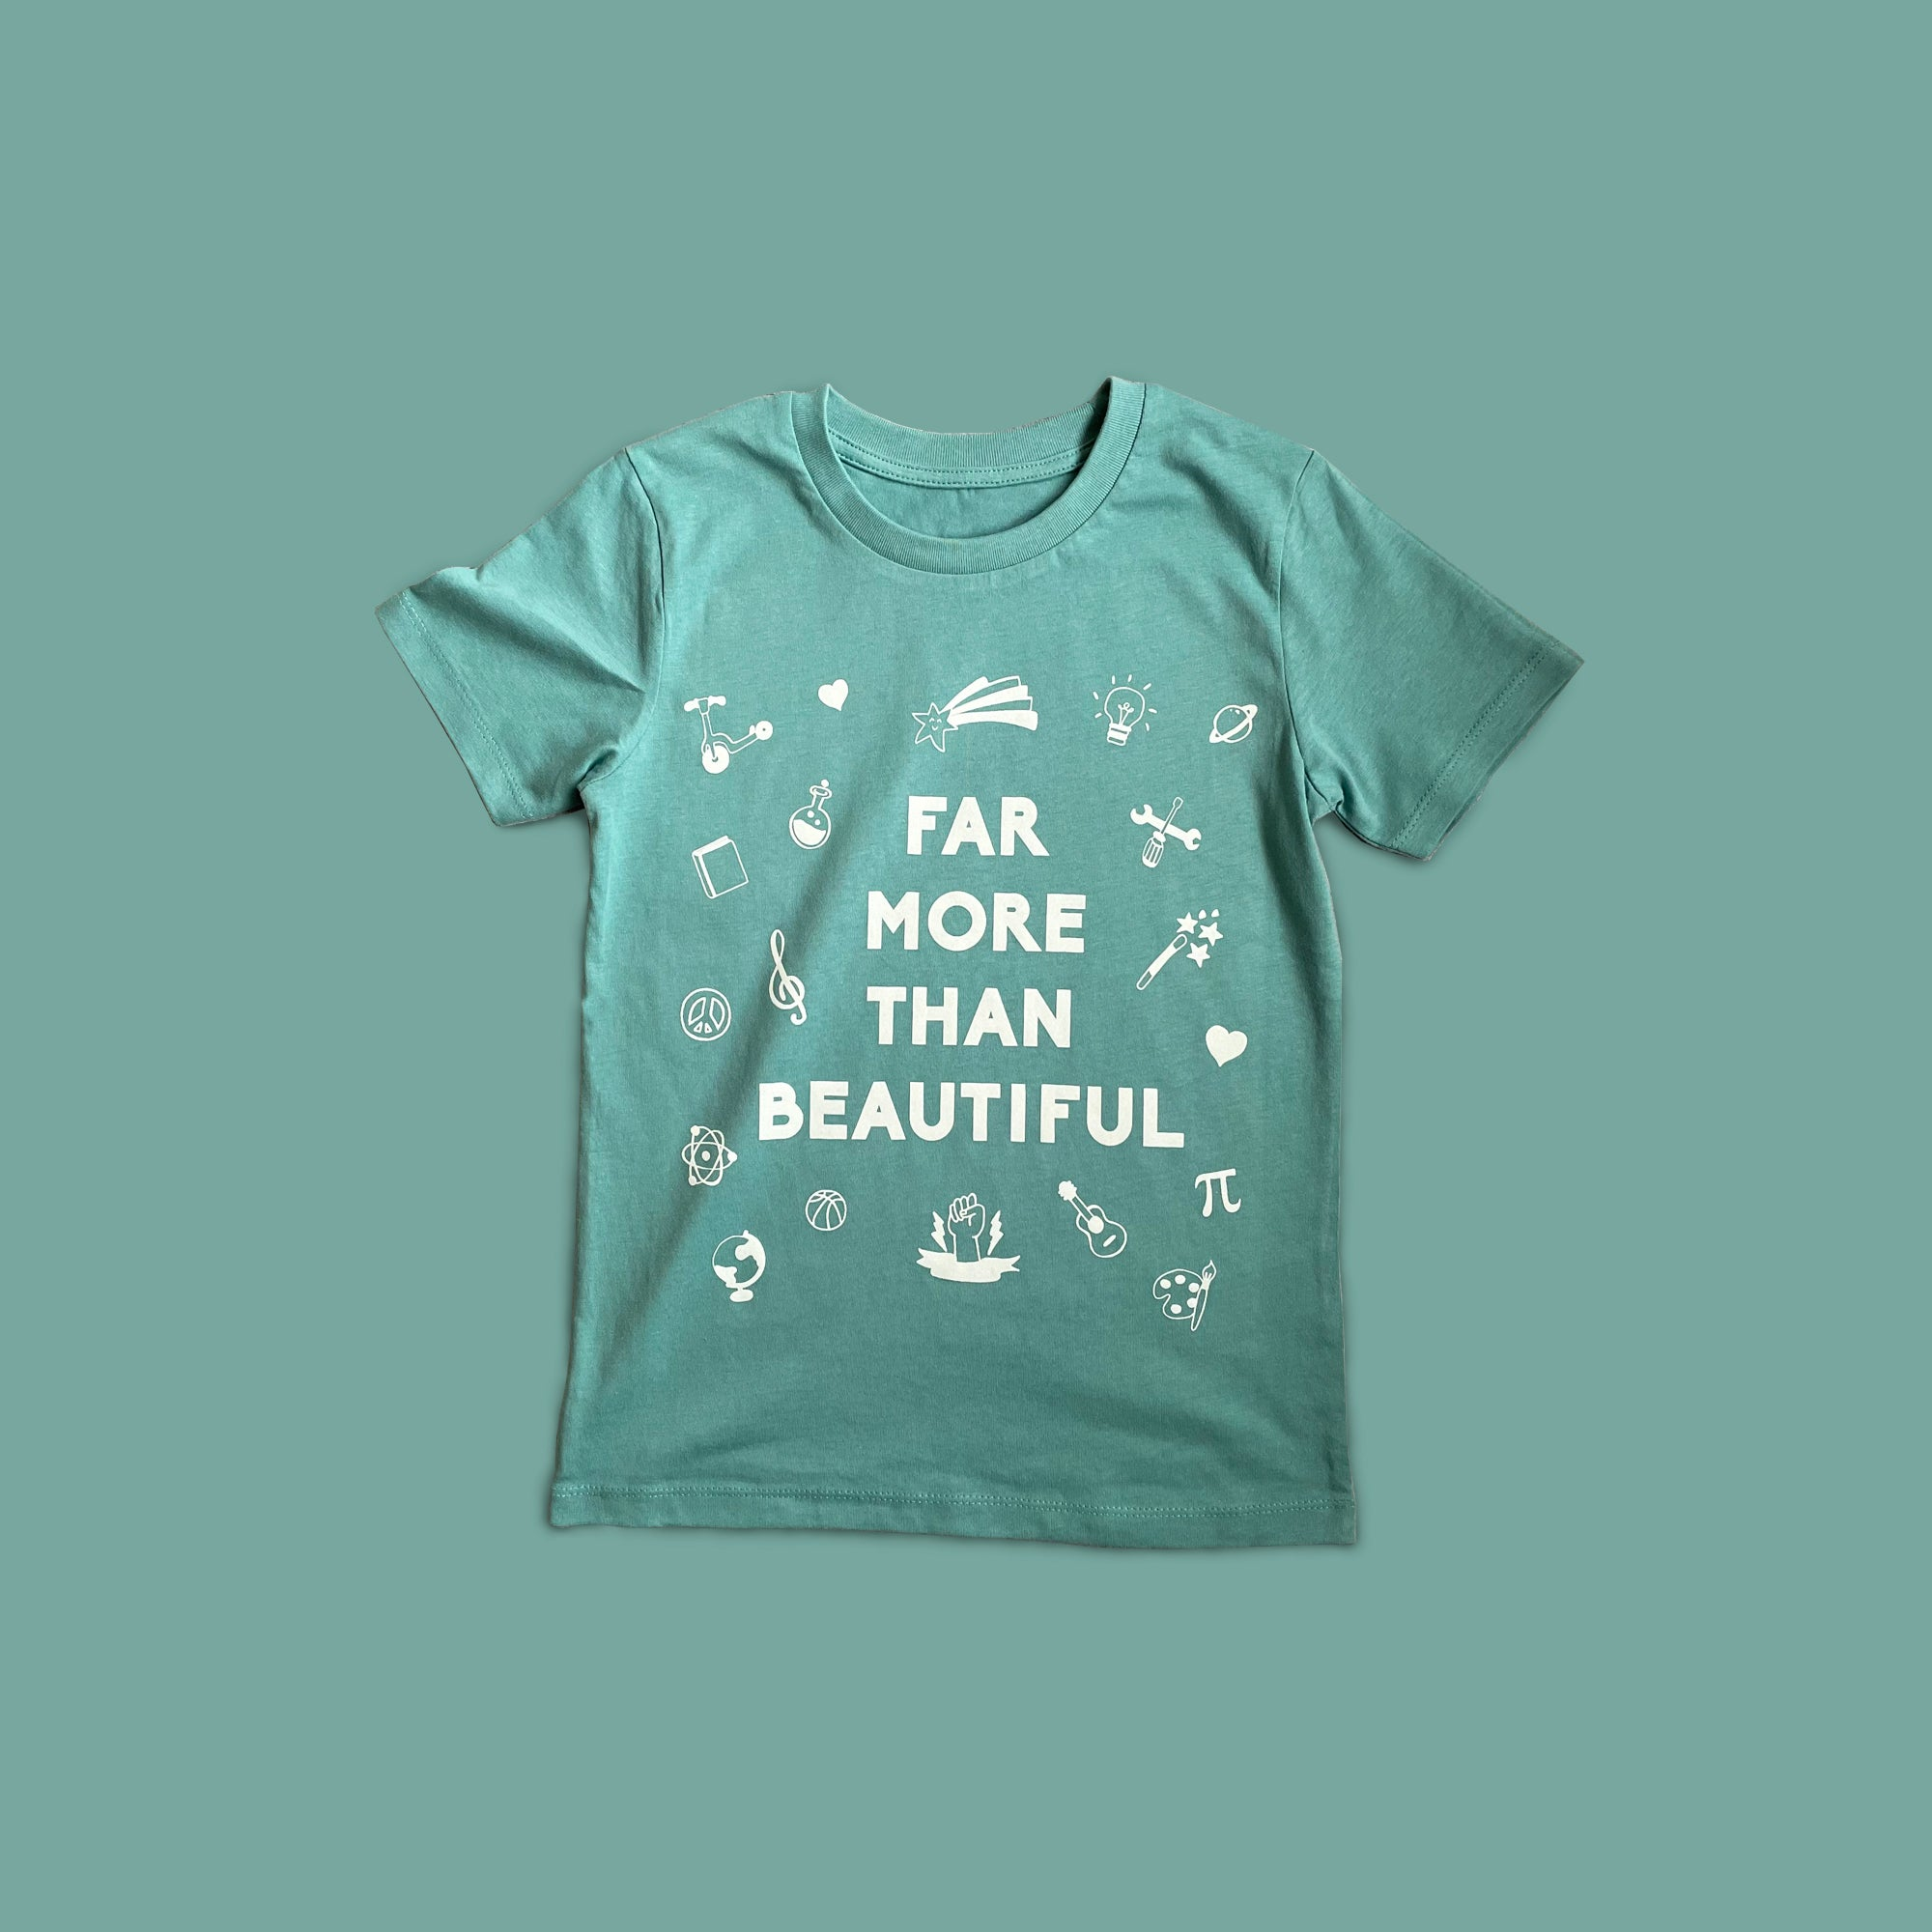 FAR MORE THAN BEAUTIFUL T-shirt